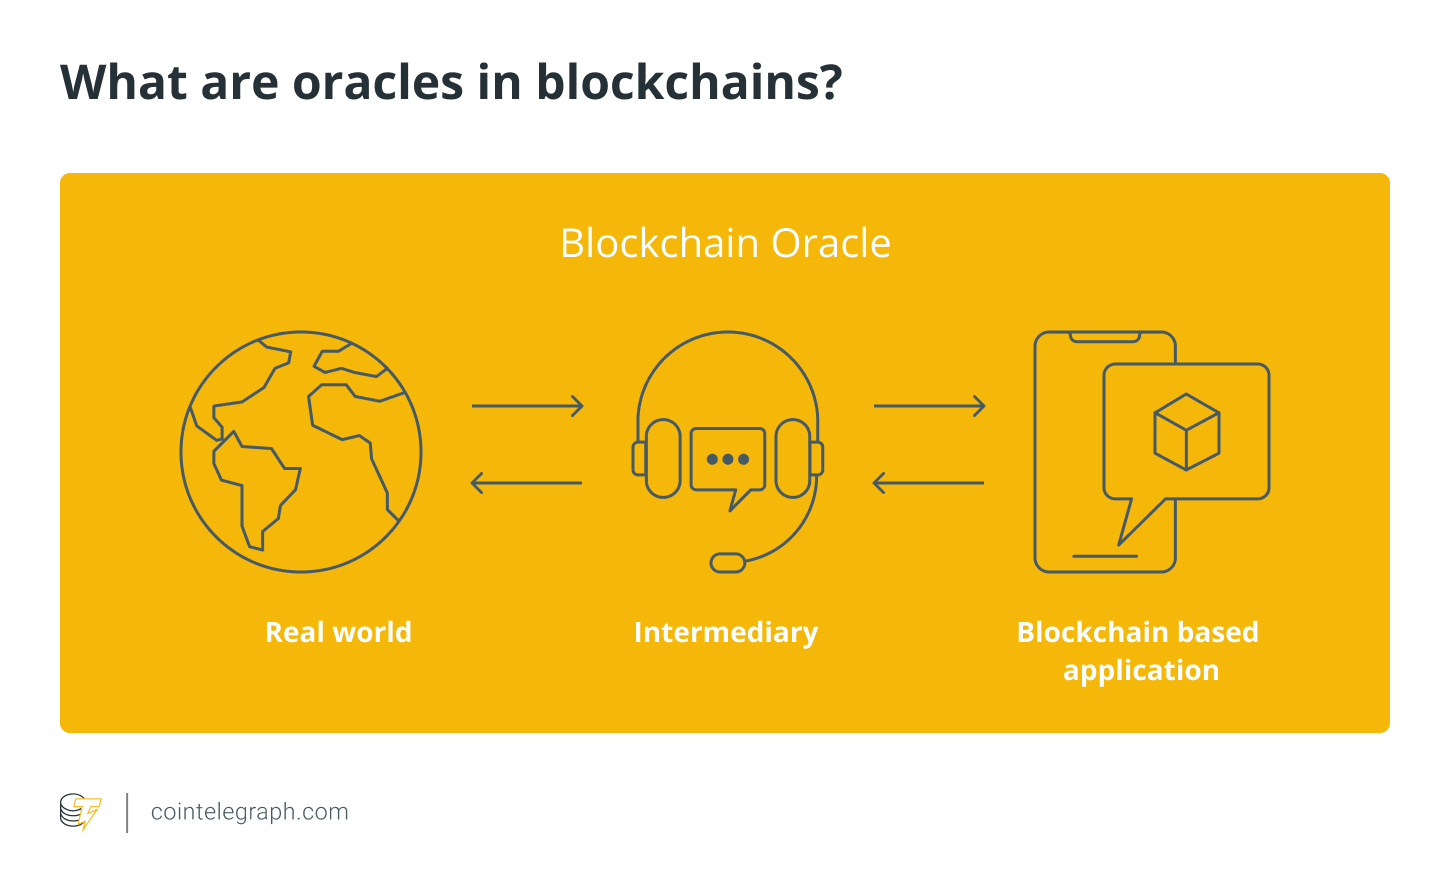 What are oracles in blockchains